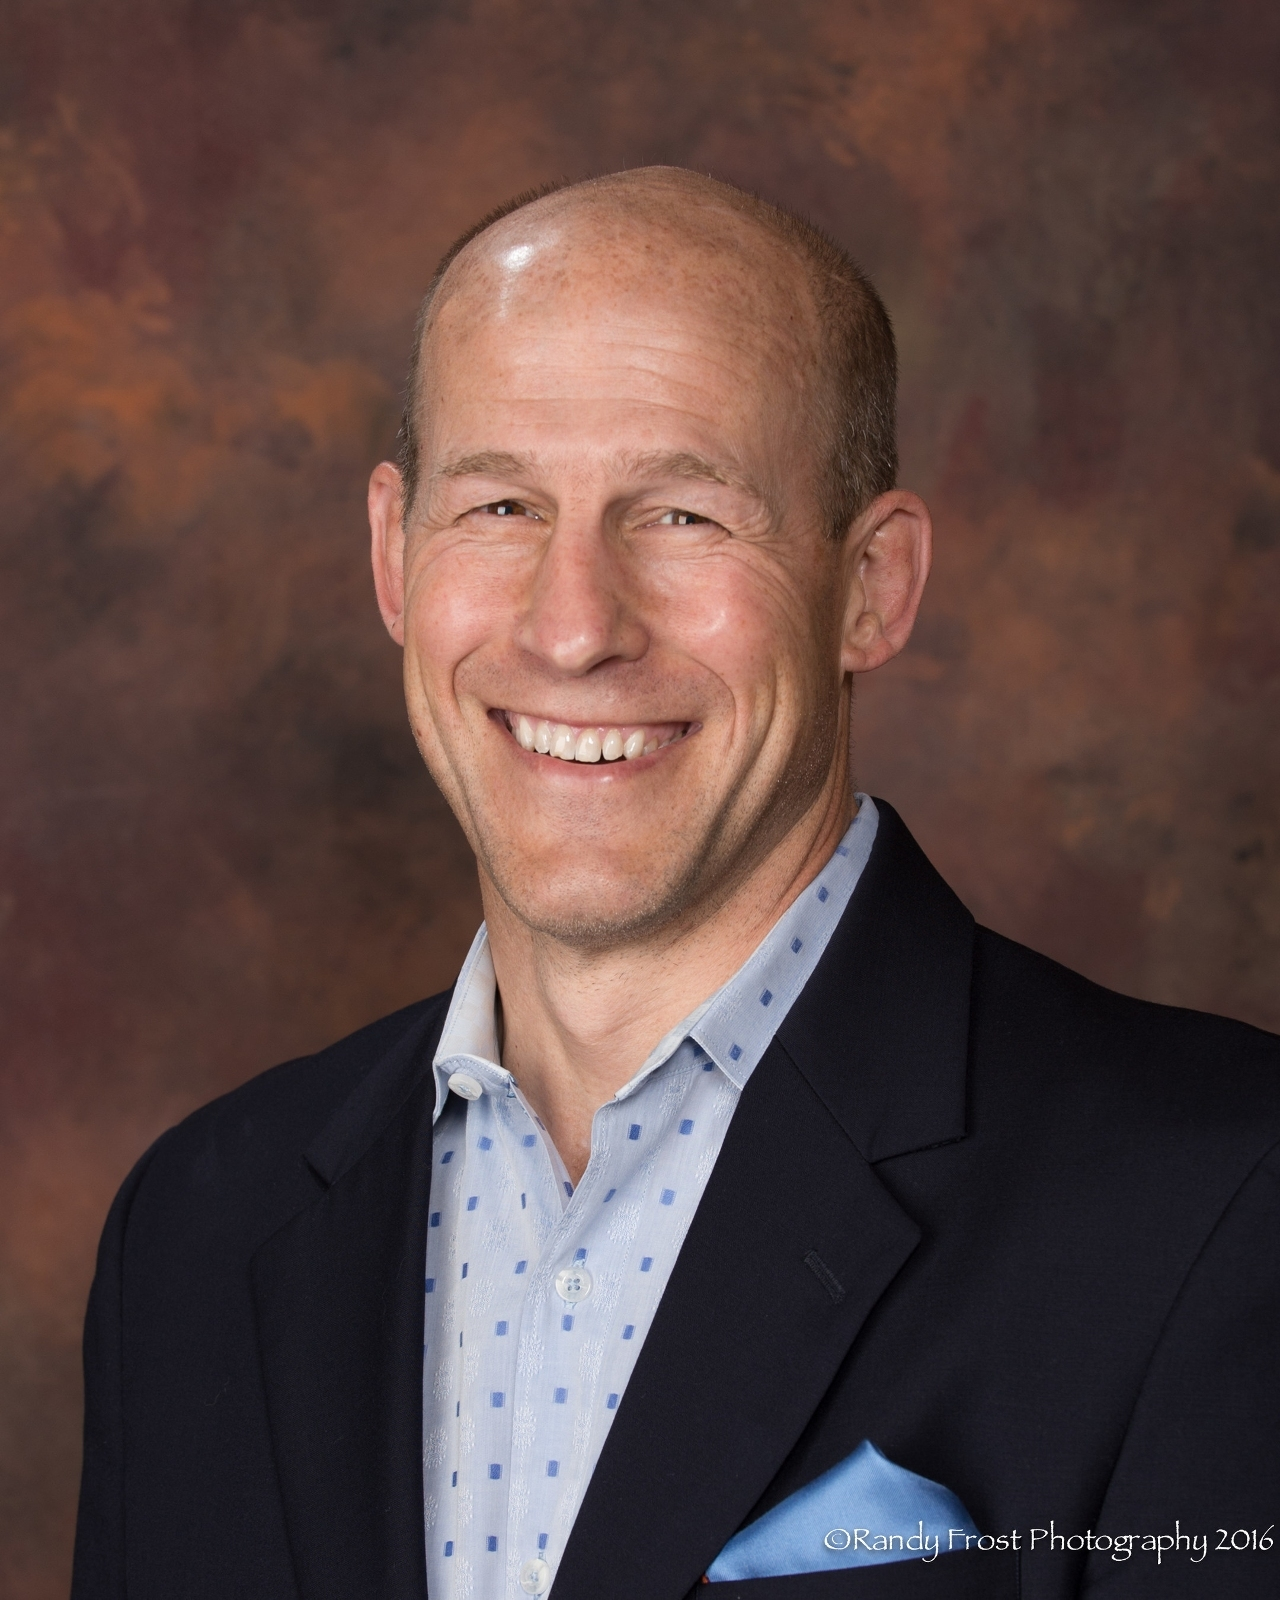 Brian Gagne previously served as chief operating officer for Health Fitness Corp.